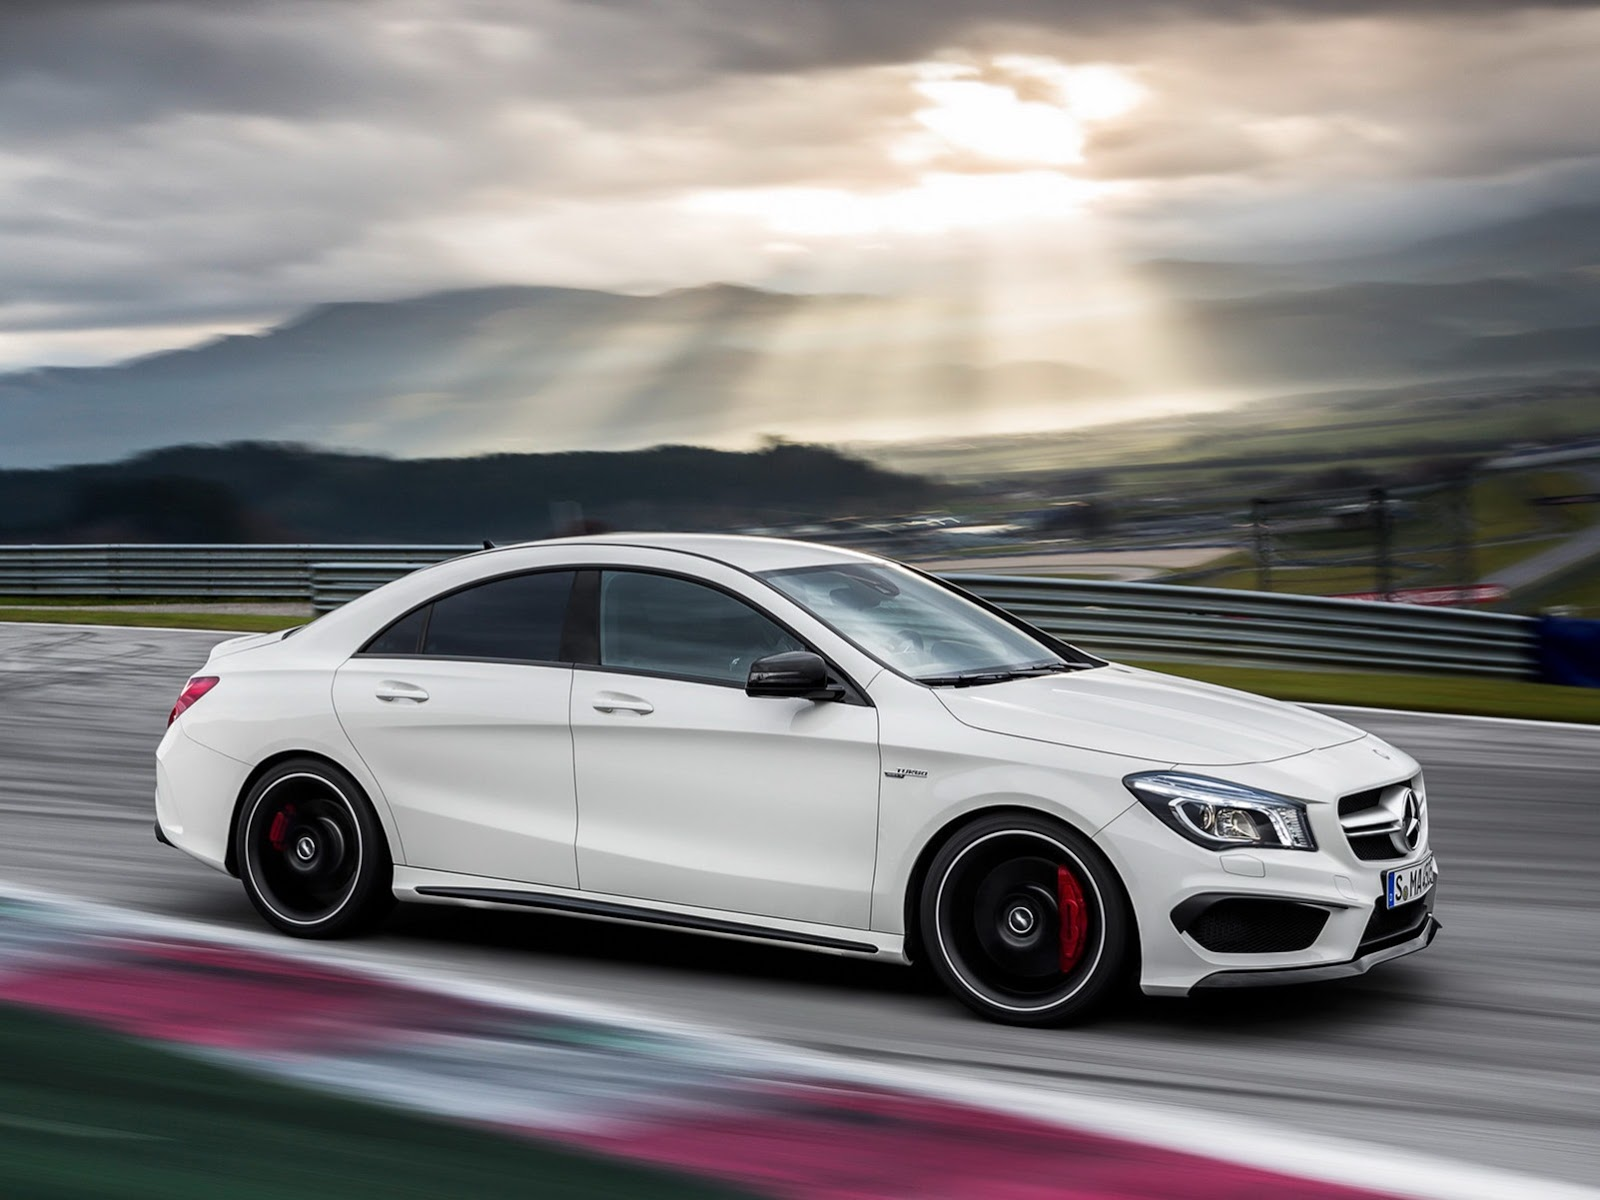 2014 mercedes cla 45 amg first photos leaked autoevolution for Mercedes benz cla 45